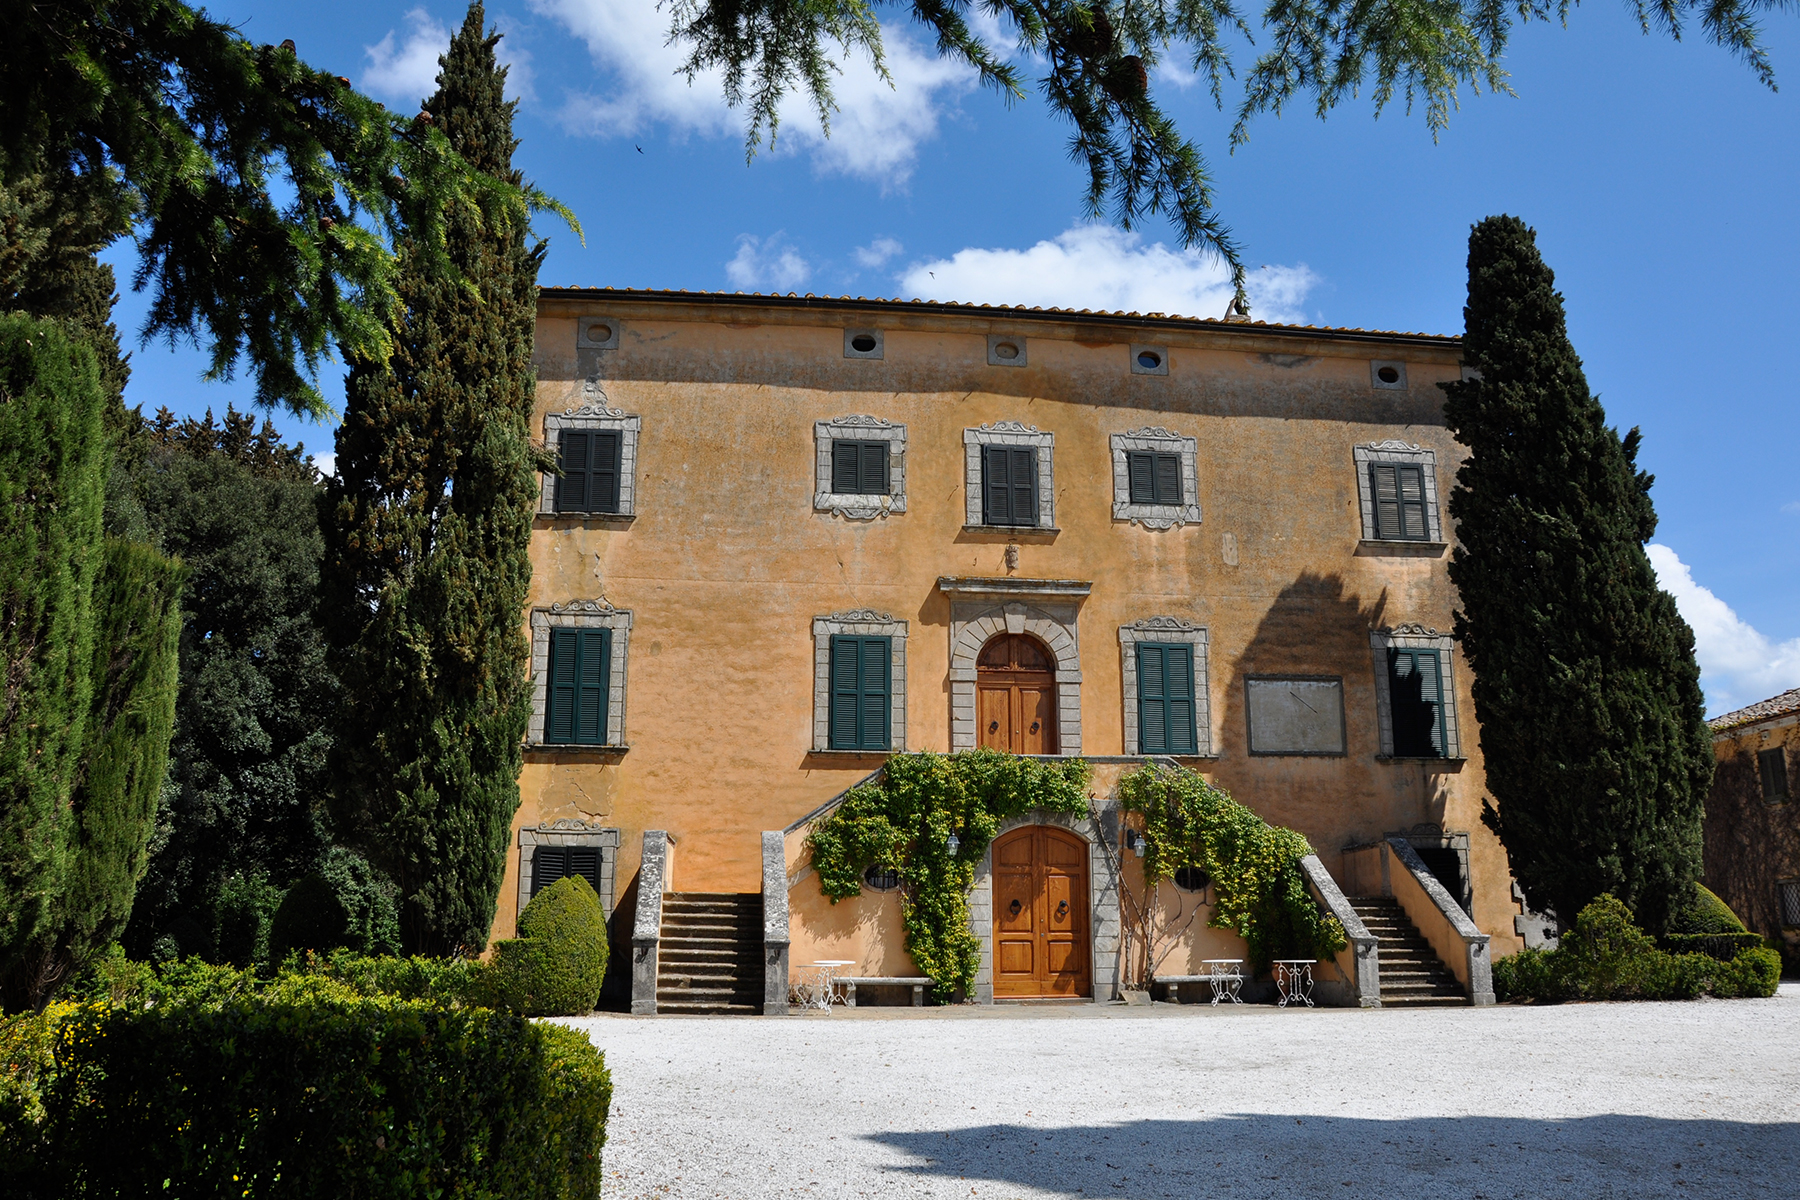 17Th century tuscan villa: beautiful and original